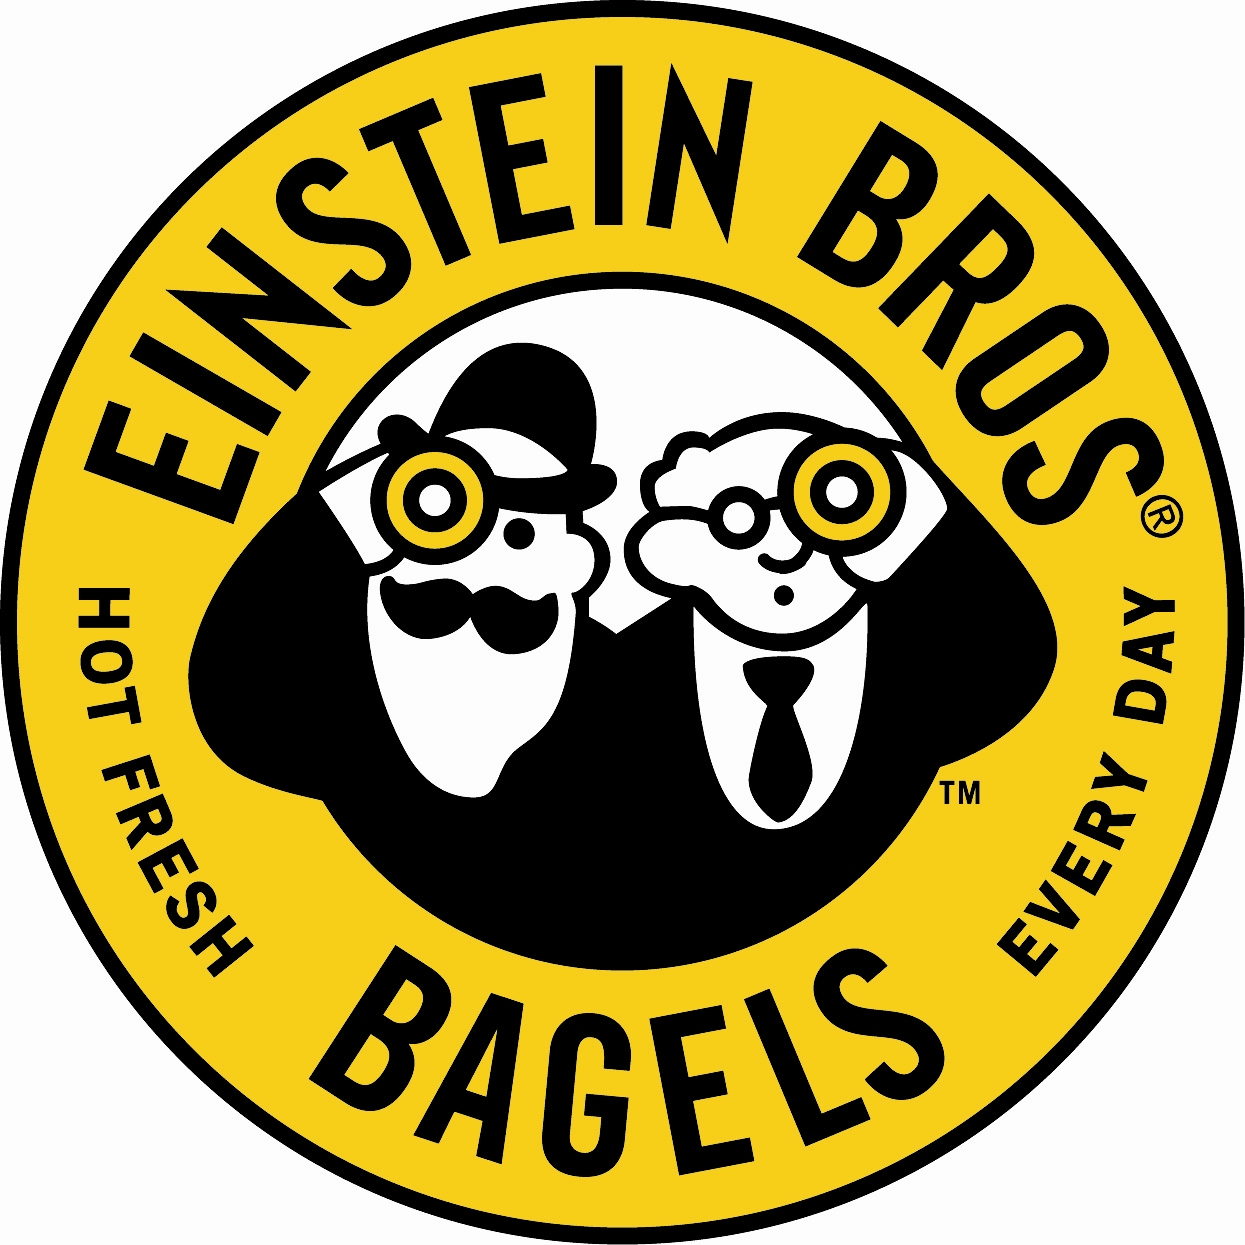 einsteinbros With 150000 followers and growing, the pop star has already posted twitpix, ...